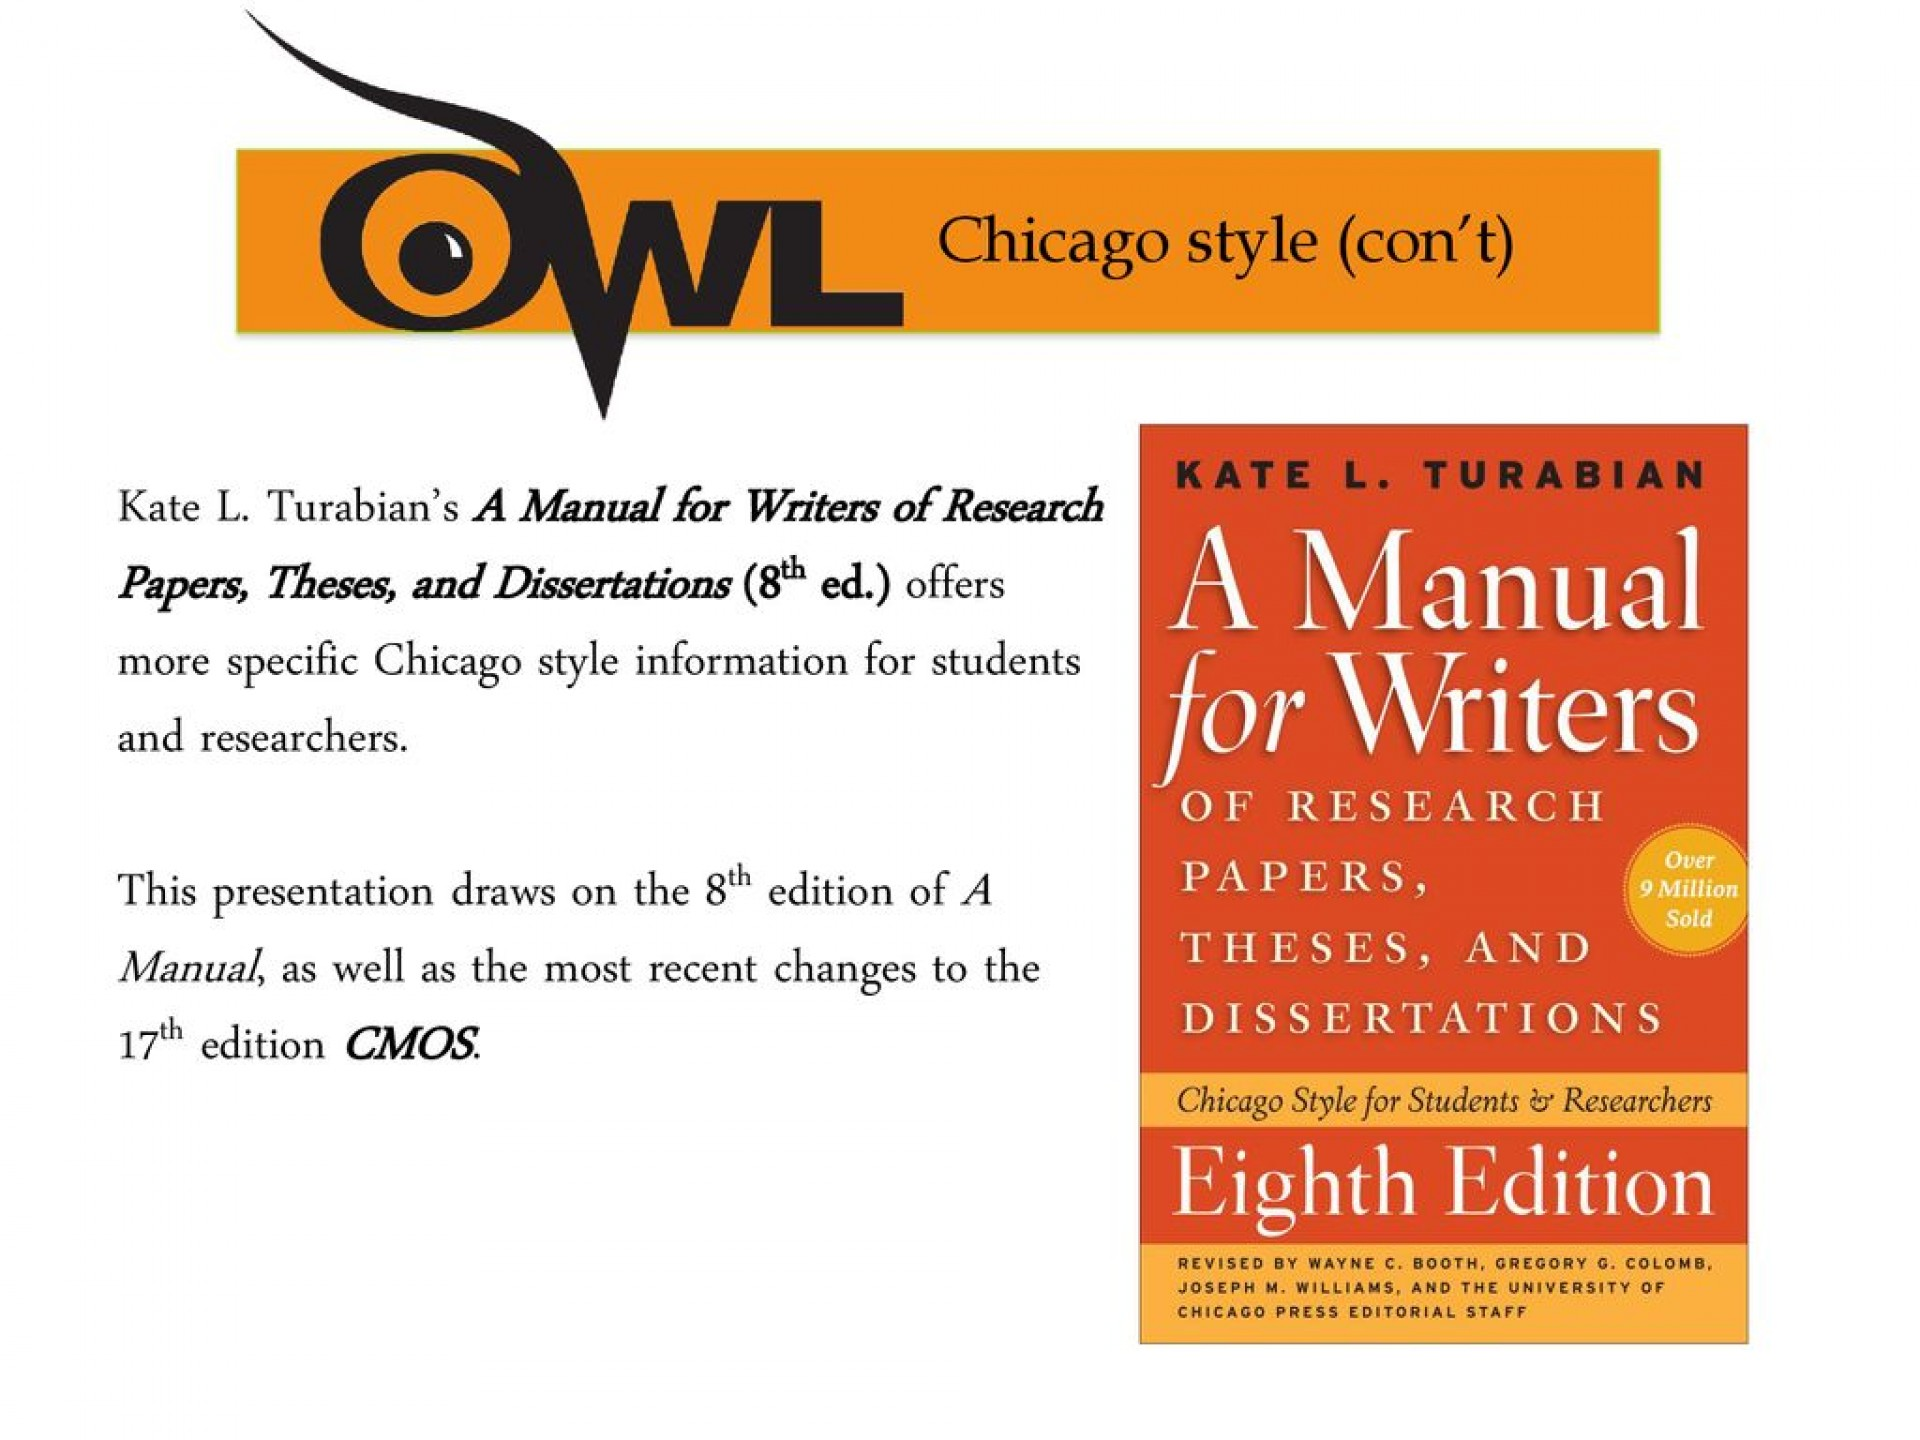 020 Chicagostyle28cone28099t29 Research Paper Manual For Writers Of Papers Theses And Dissertations Eighth Phenomenal A Edition Pdf 1920